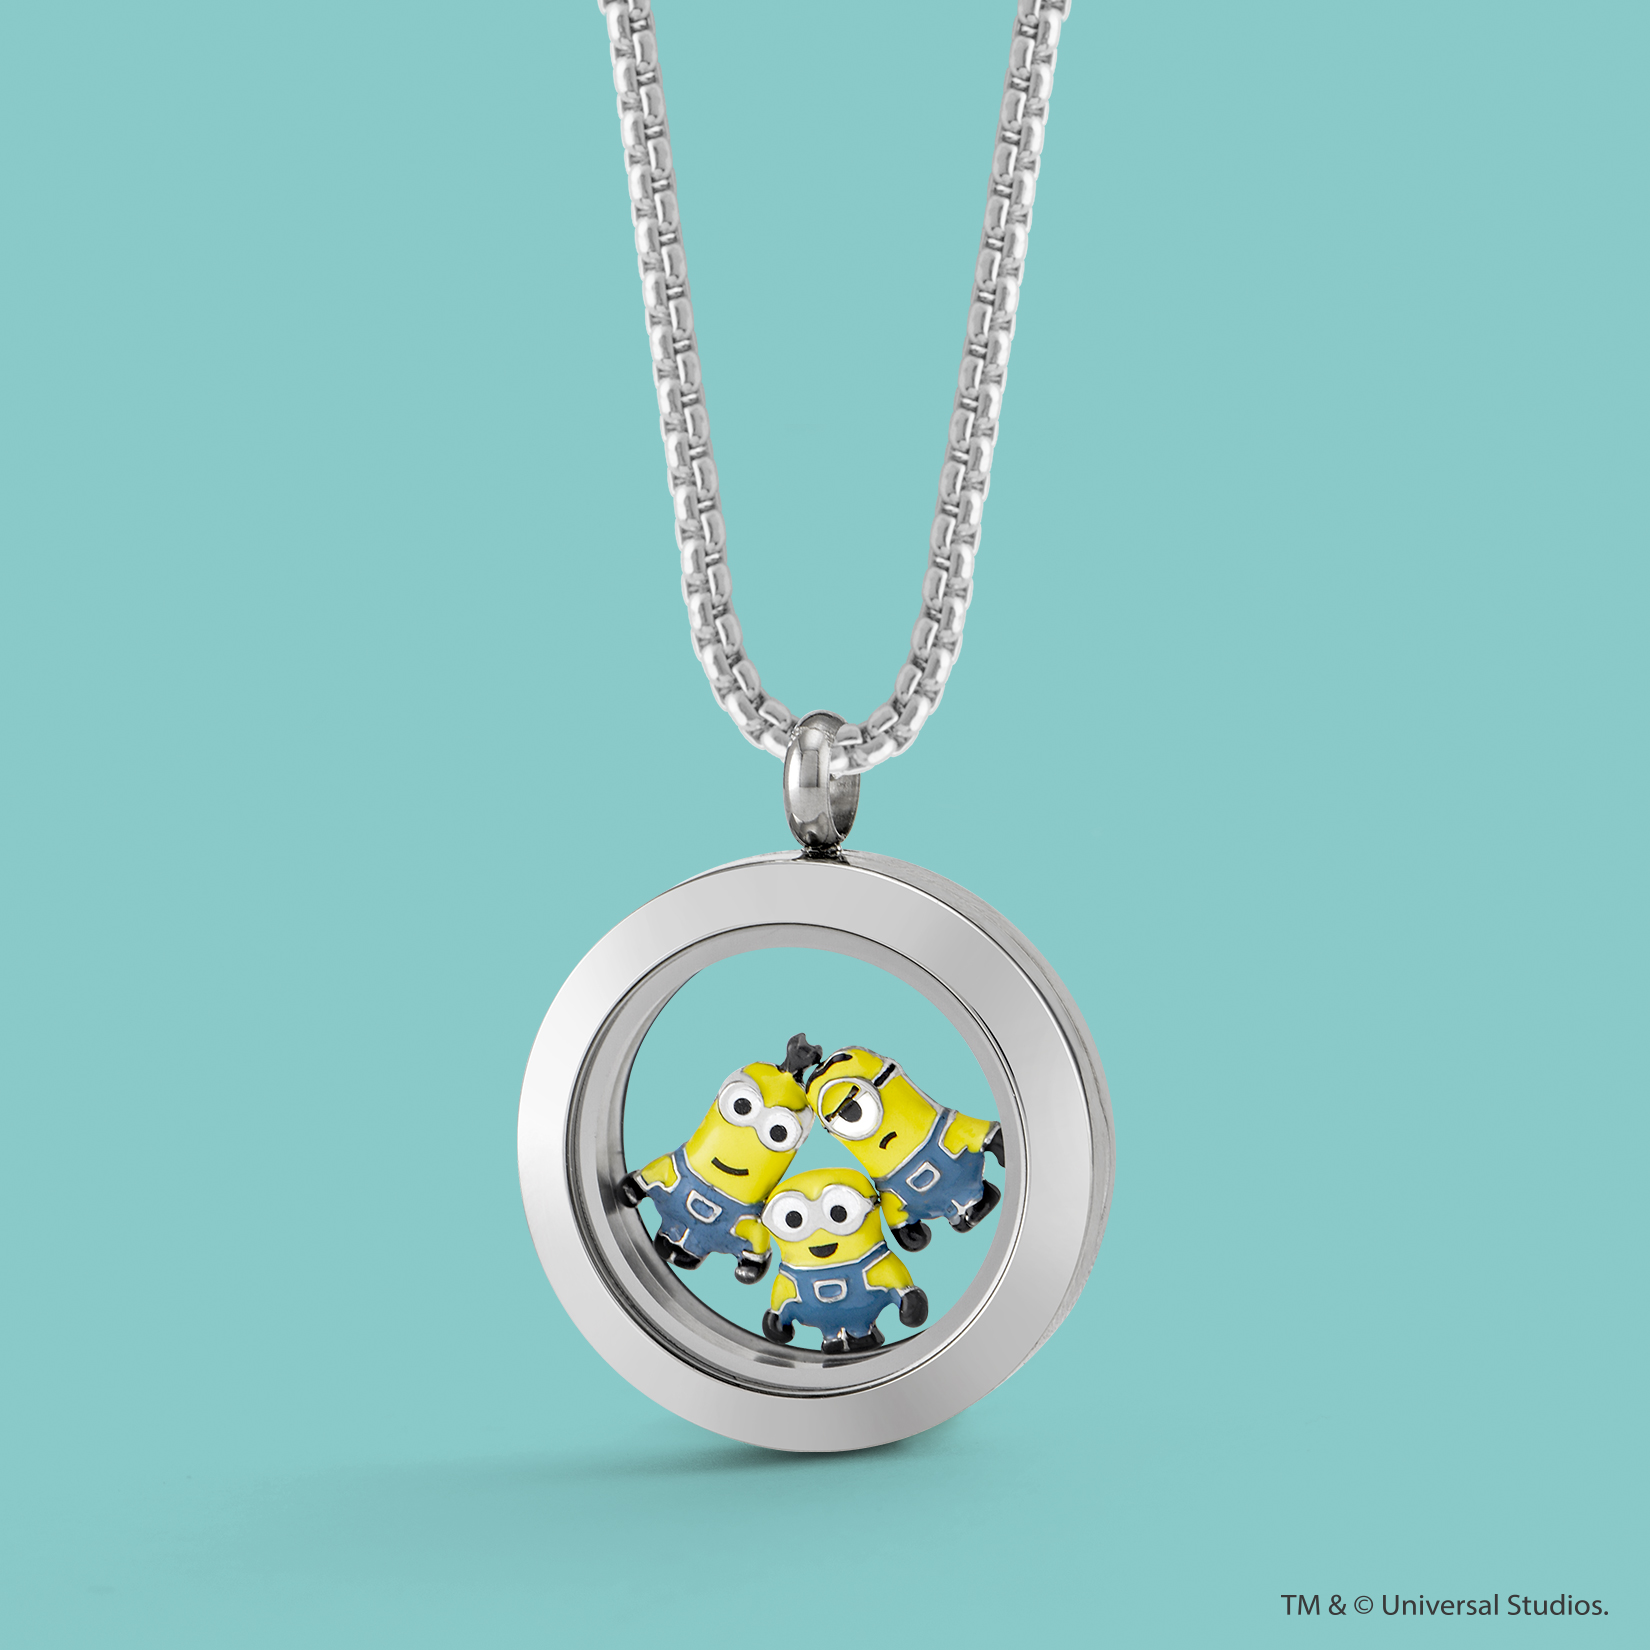 75% Off Origami Owl Coupons, Promo Codes & Free Shipping | 1650x1650